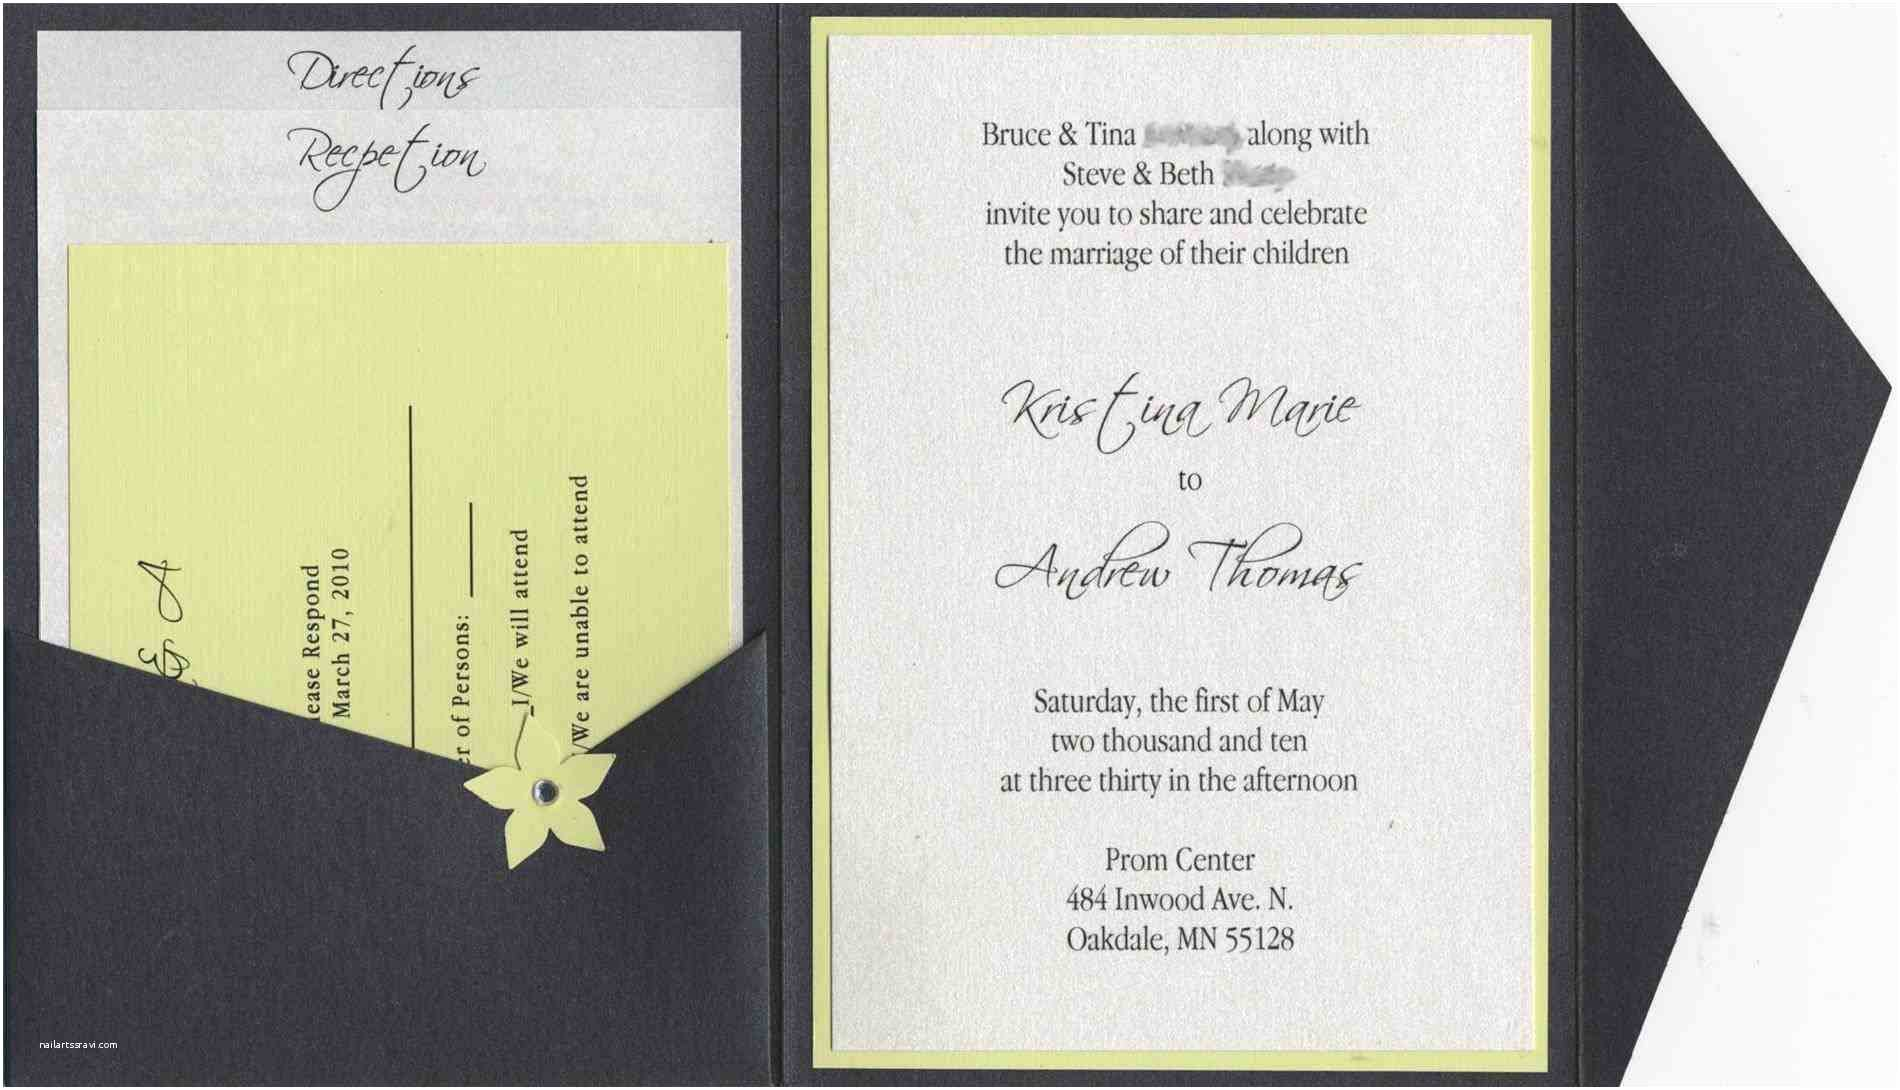 Wedding Invitation Wording for Friends Unique Wedding Invitations Samples